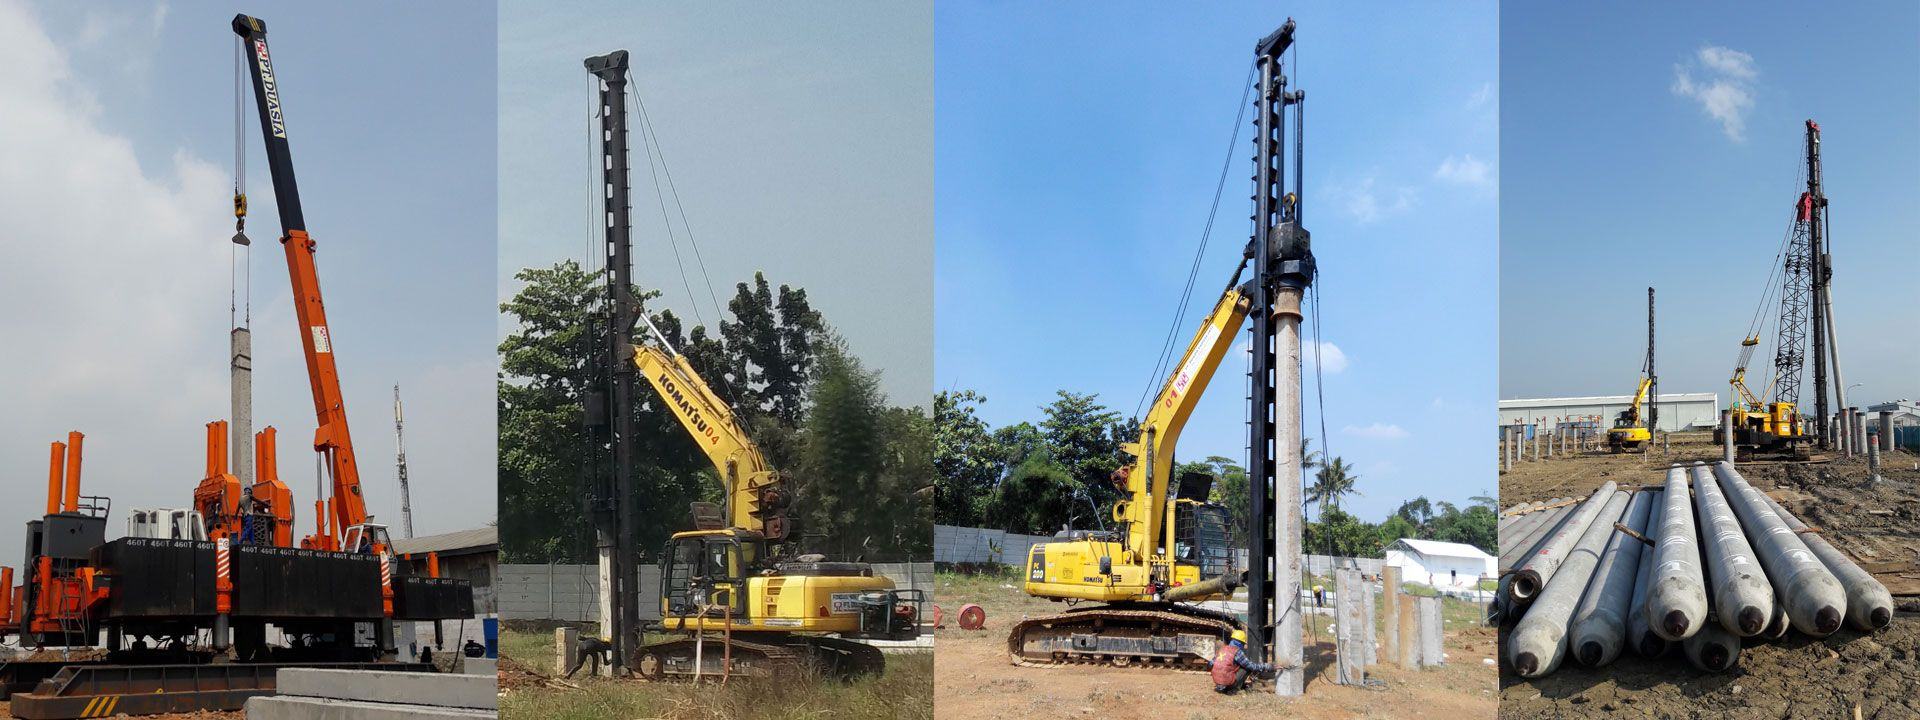 Our team of professional with excellent methods of construction are fully supported by reliable equipment system to carry out all of our Client's trusted projects